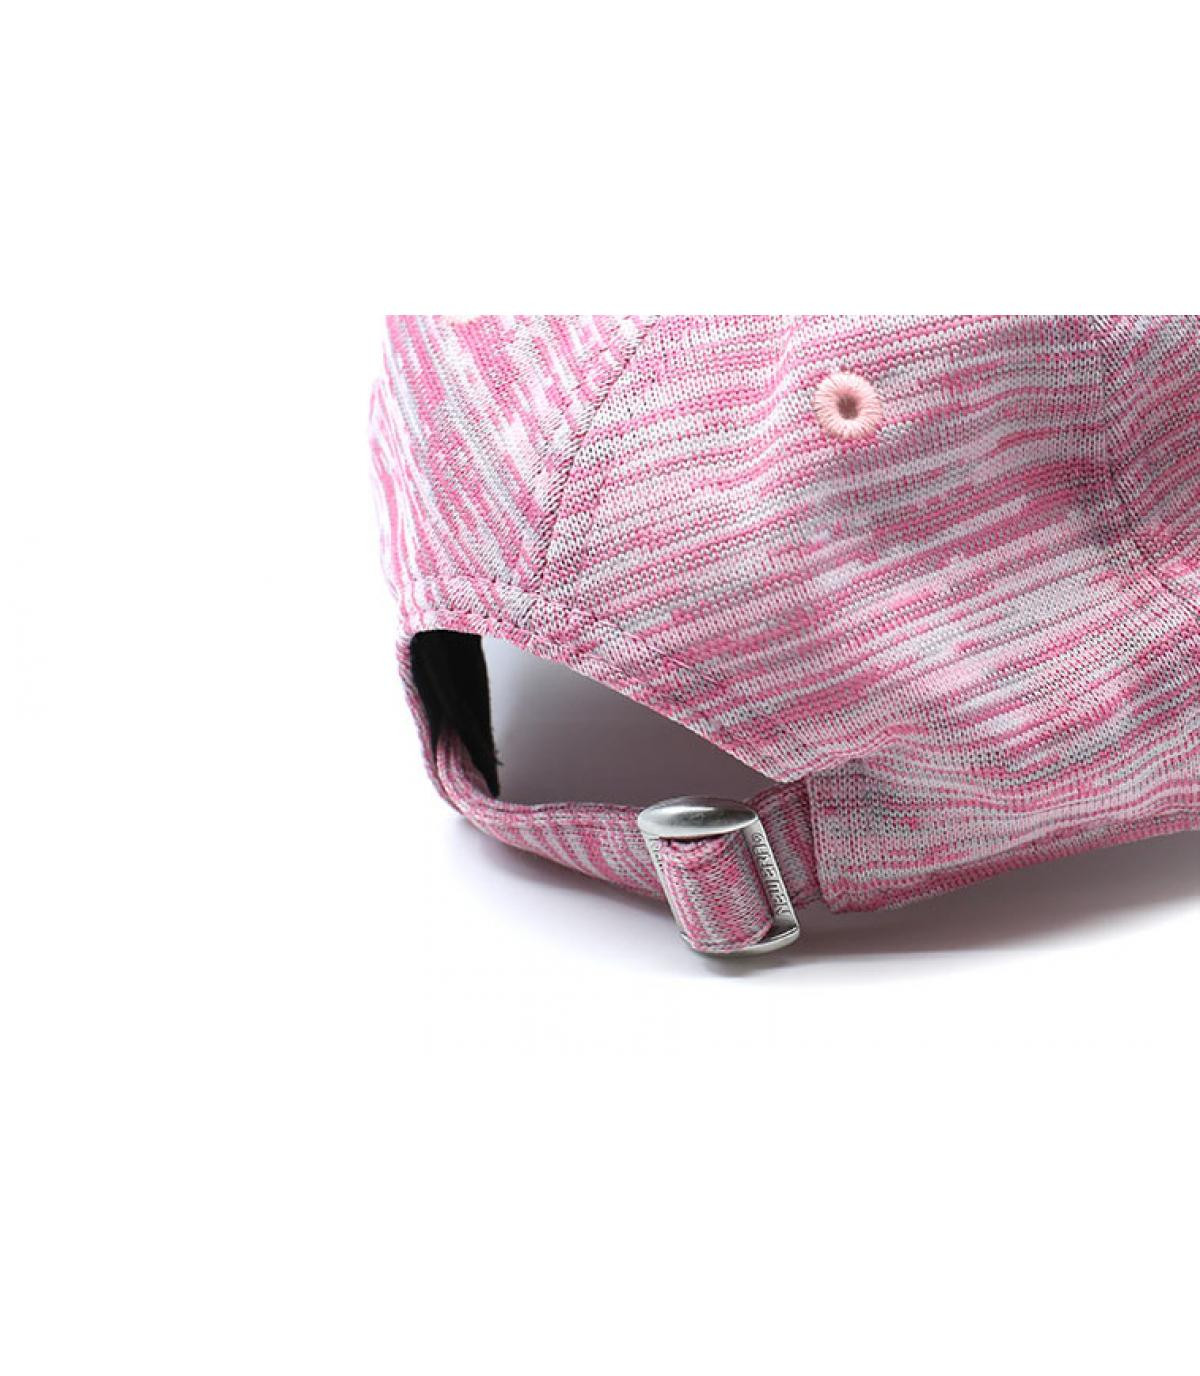 Détails Wmns Engineered Fit 9Forty NY pink graphite - image 5